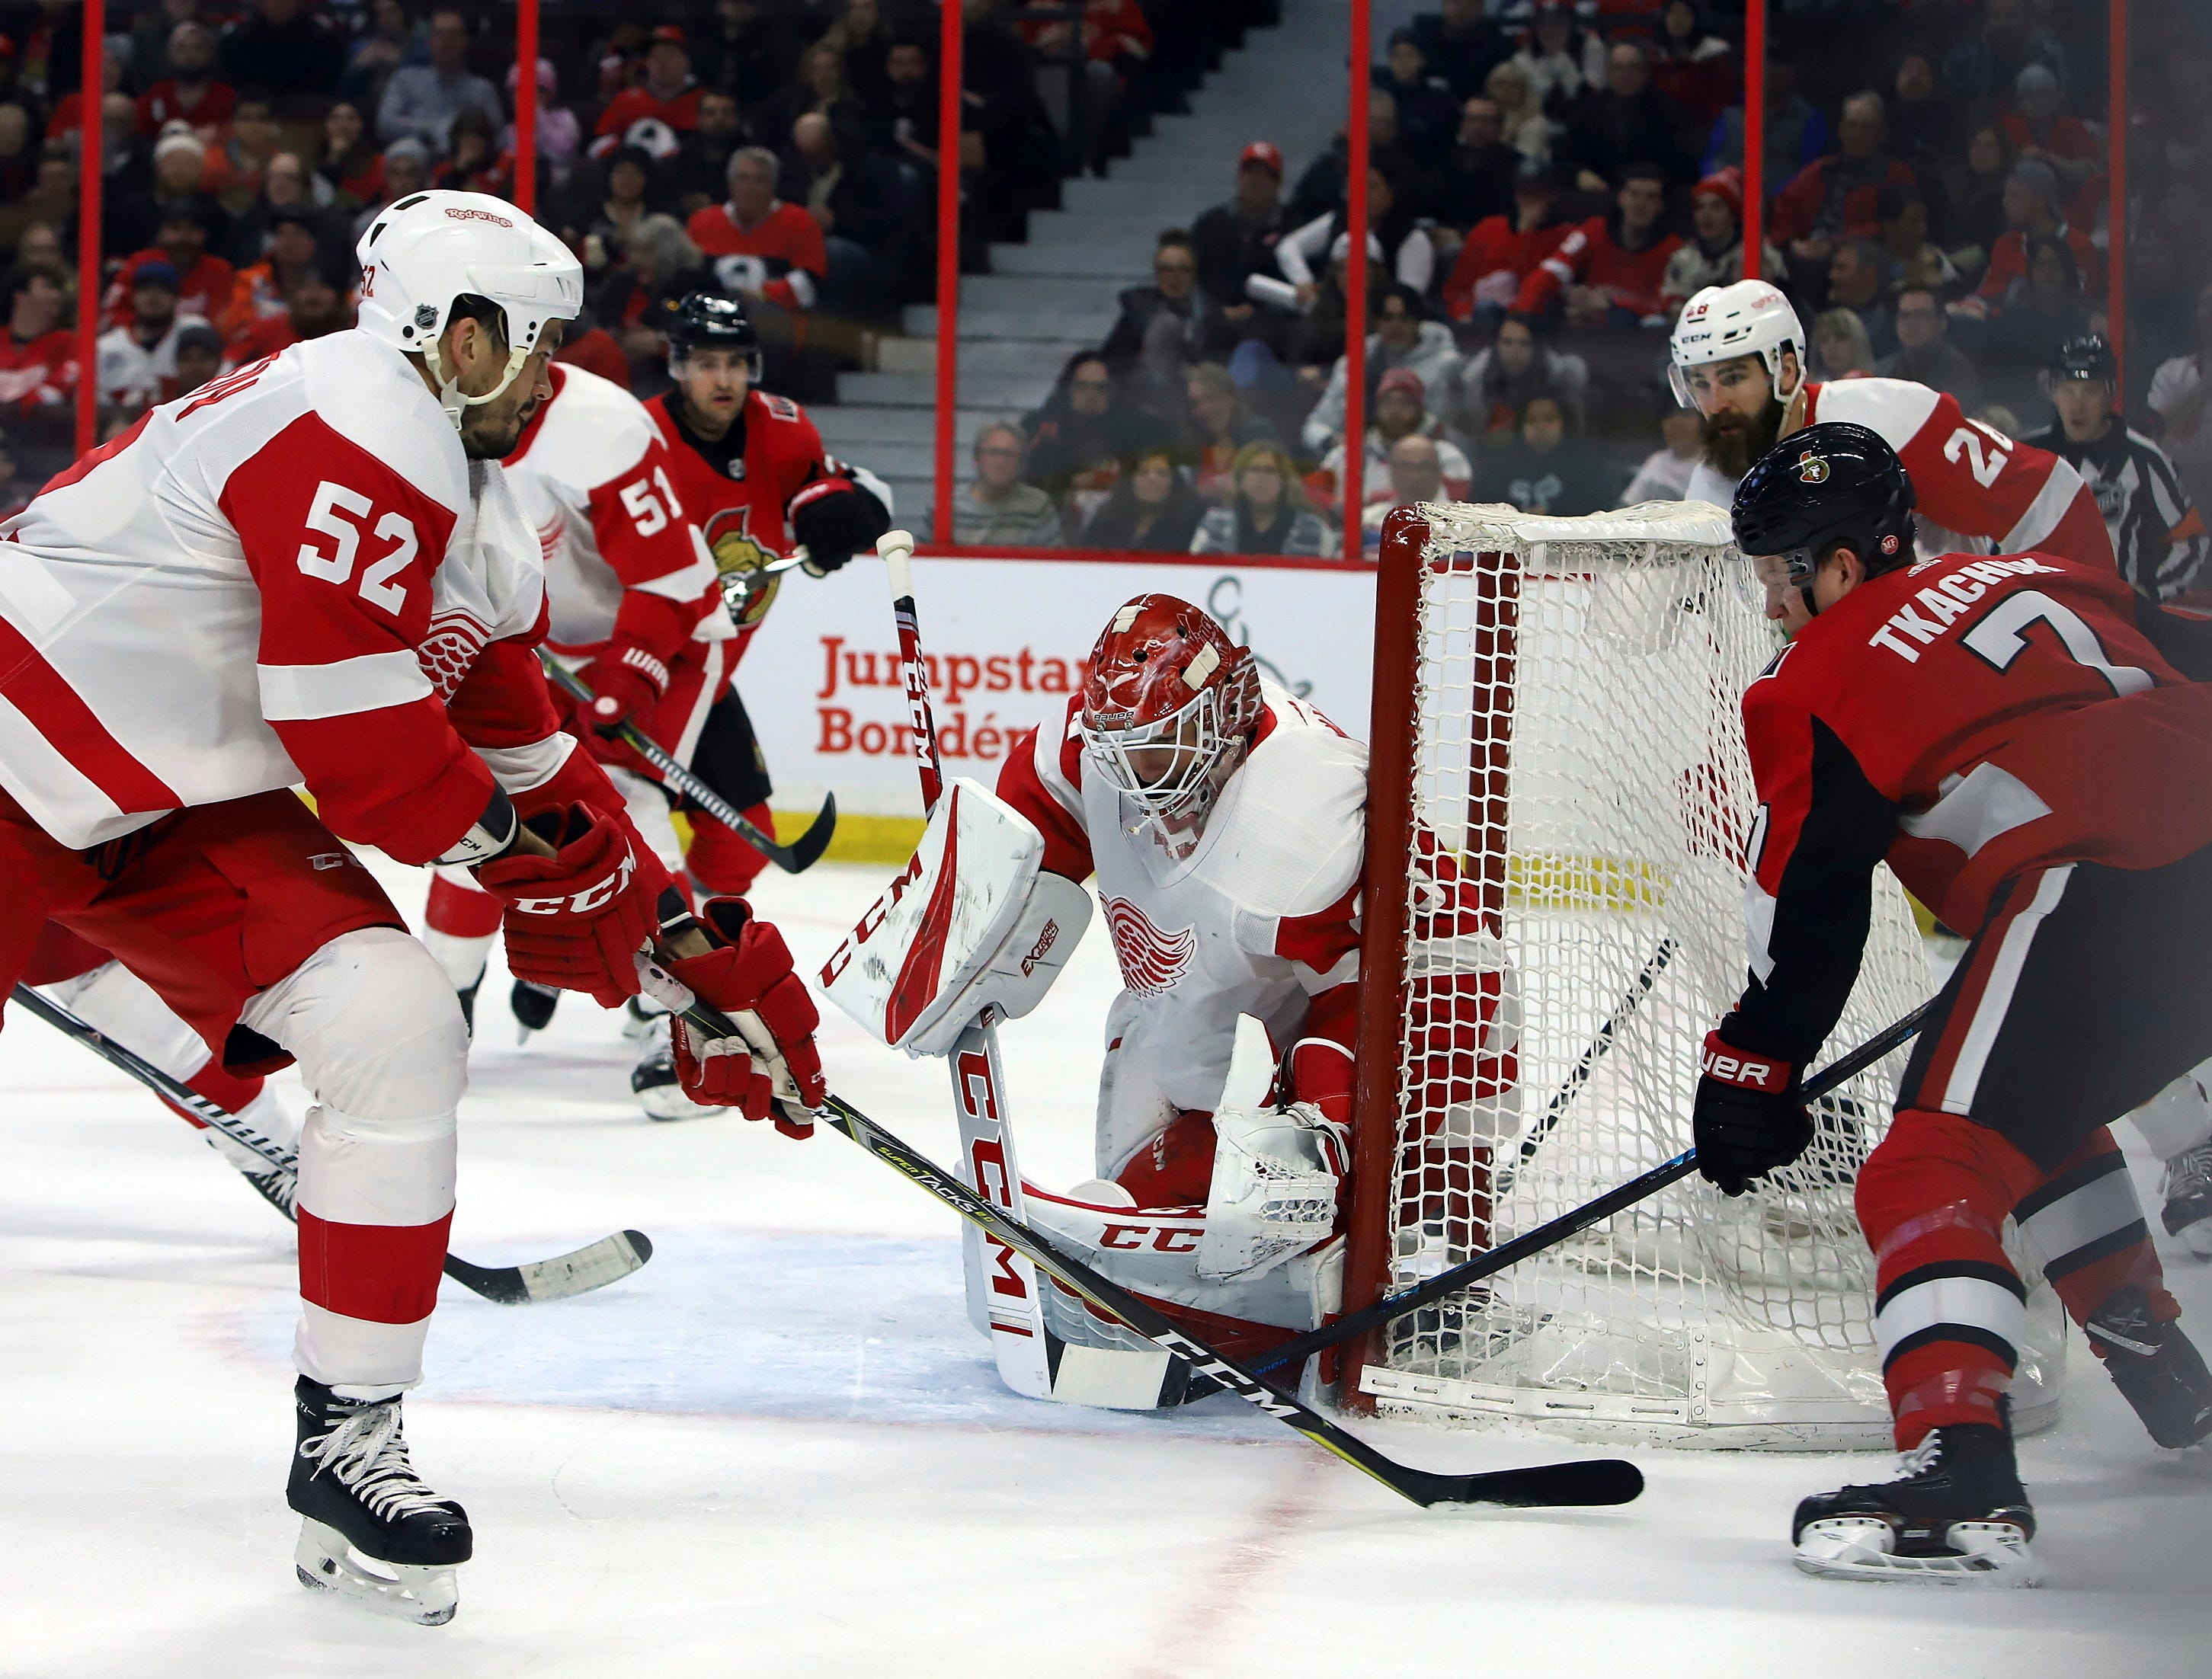 Detroit Red Wings' Jonathan Ericsson (52) defends as goaltender Jonathan Bernier (45) blocks a wraparound attempt by Ottawa Senators' Brady Tkachuk (7) during second-period NHL hockey game action in Ottawa, Saturday, Feb. 2, 2019. (Fred Chartrand/The Canadian Press via AP)